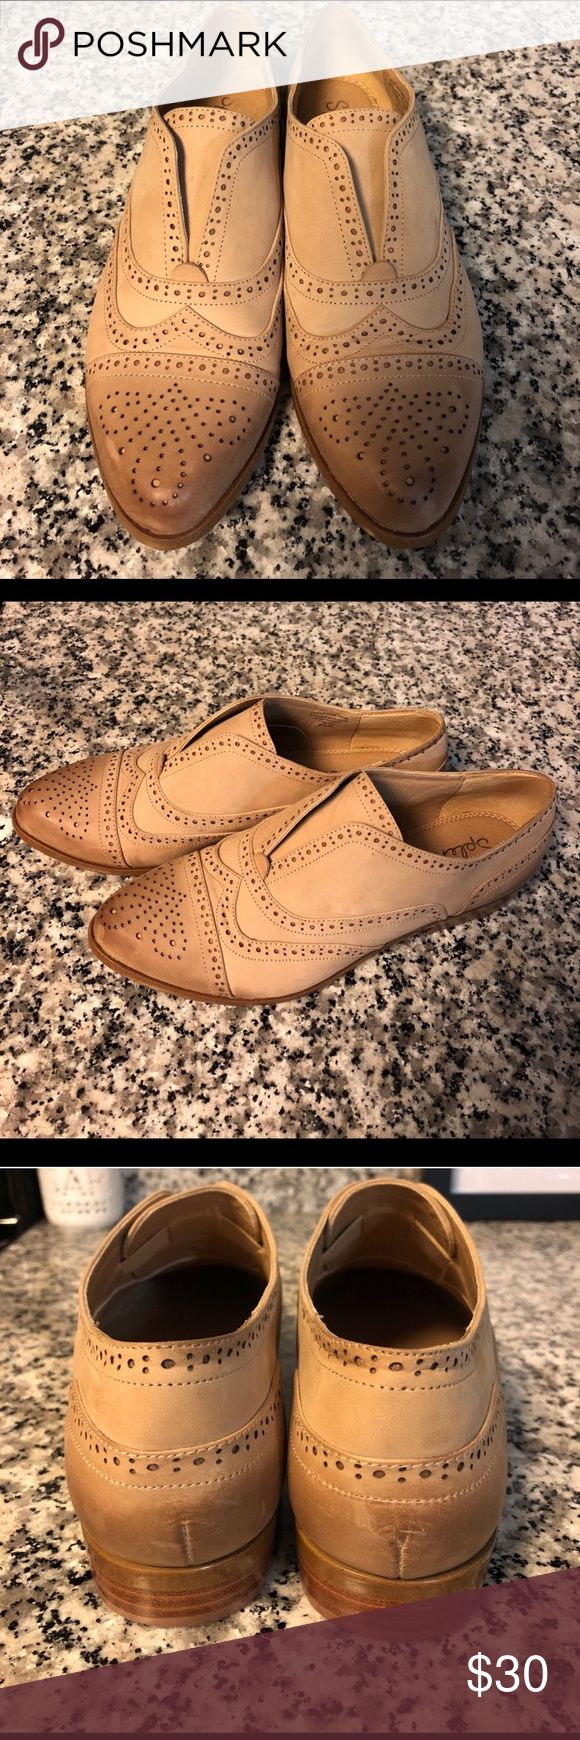 EUC splendid oxfords loafers EUC Anthropologie Shoes Flats & Loafers #loafersoxford